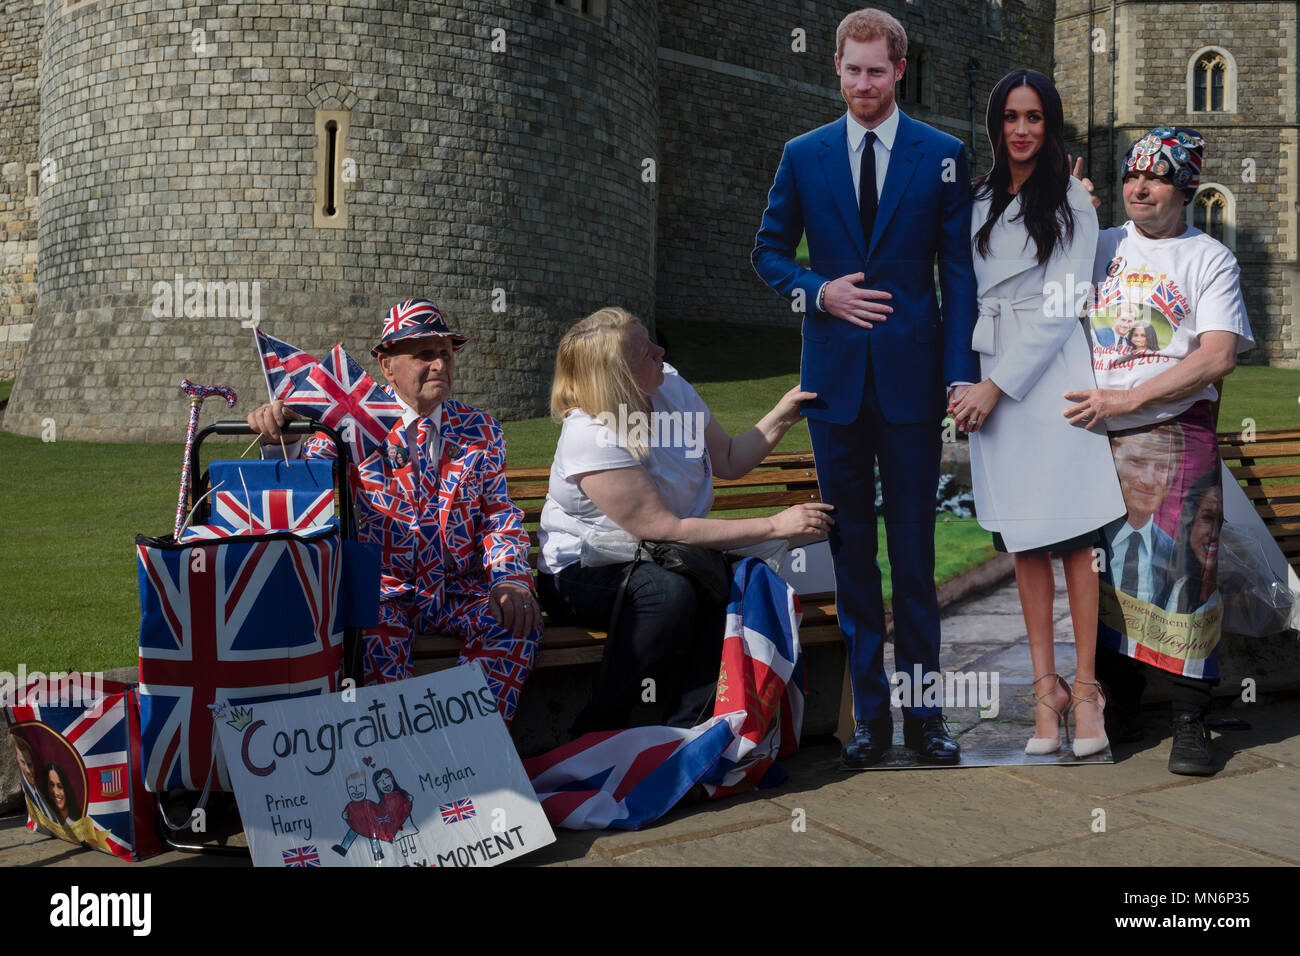 Royalists occupy benches outside Windsor Castle with a life-size standee of Prince Harry and Meghan Markle as the royal town gets ready for the royal wedding between Harry and his American fiance, on 14th May 2018, in London, England. Stock Photo